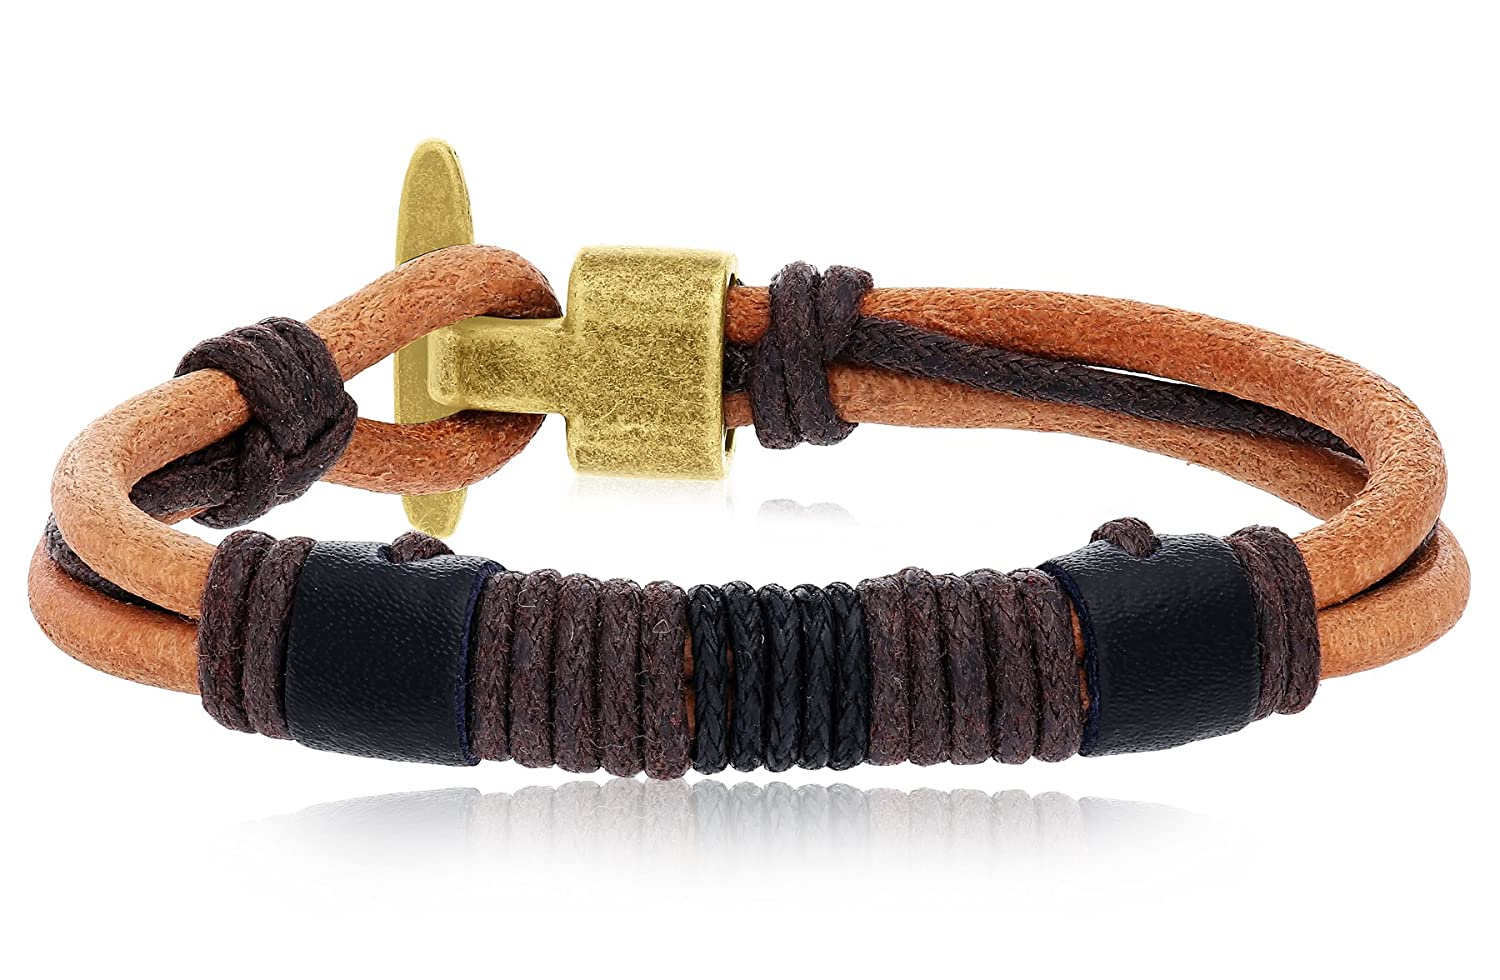 with AlloyClasp Regetta Jewelry Light Brown Leather Rope Wrist Bracelet Unisex and Casual By Regetta Jewelry